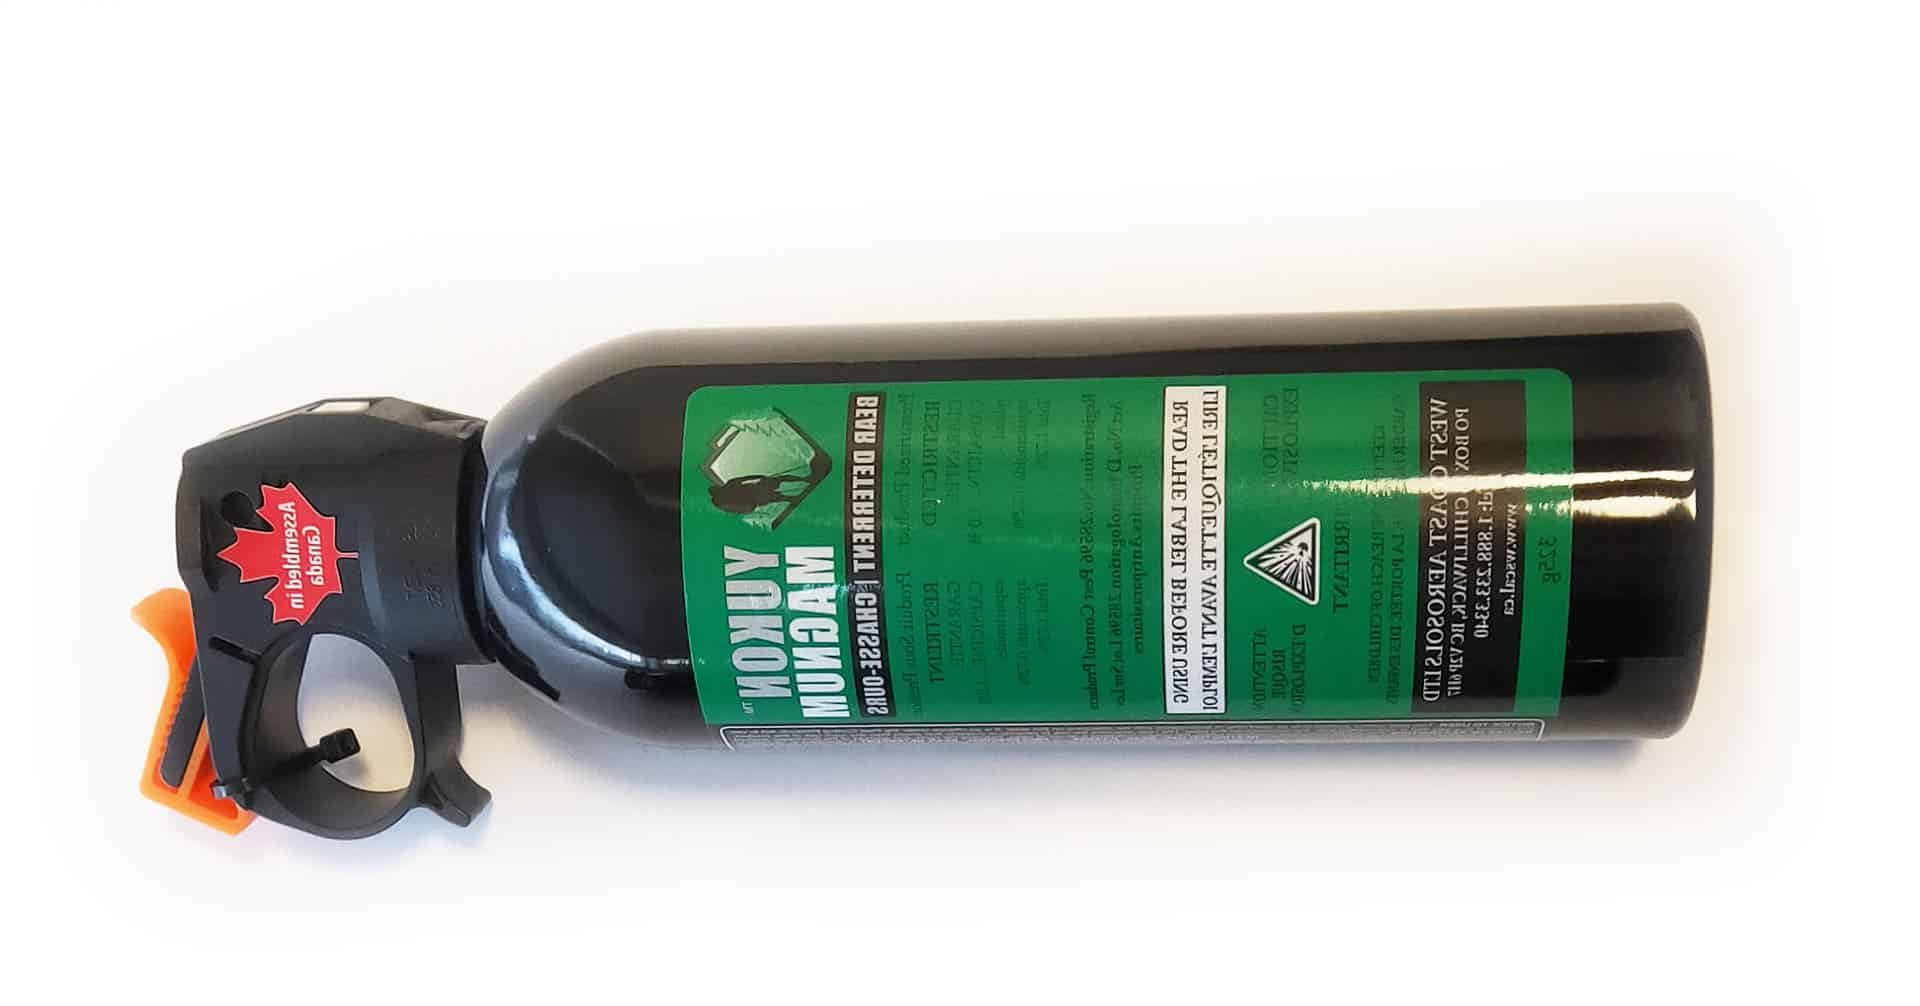 yukon magnum bear spray review